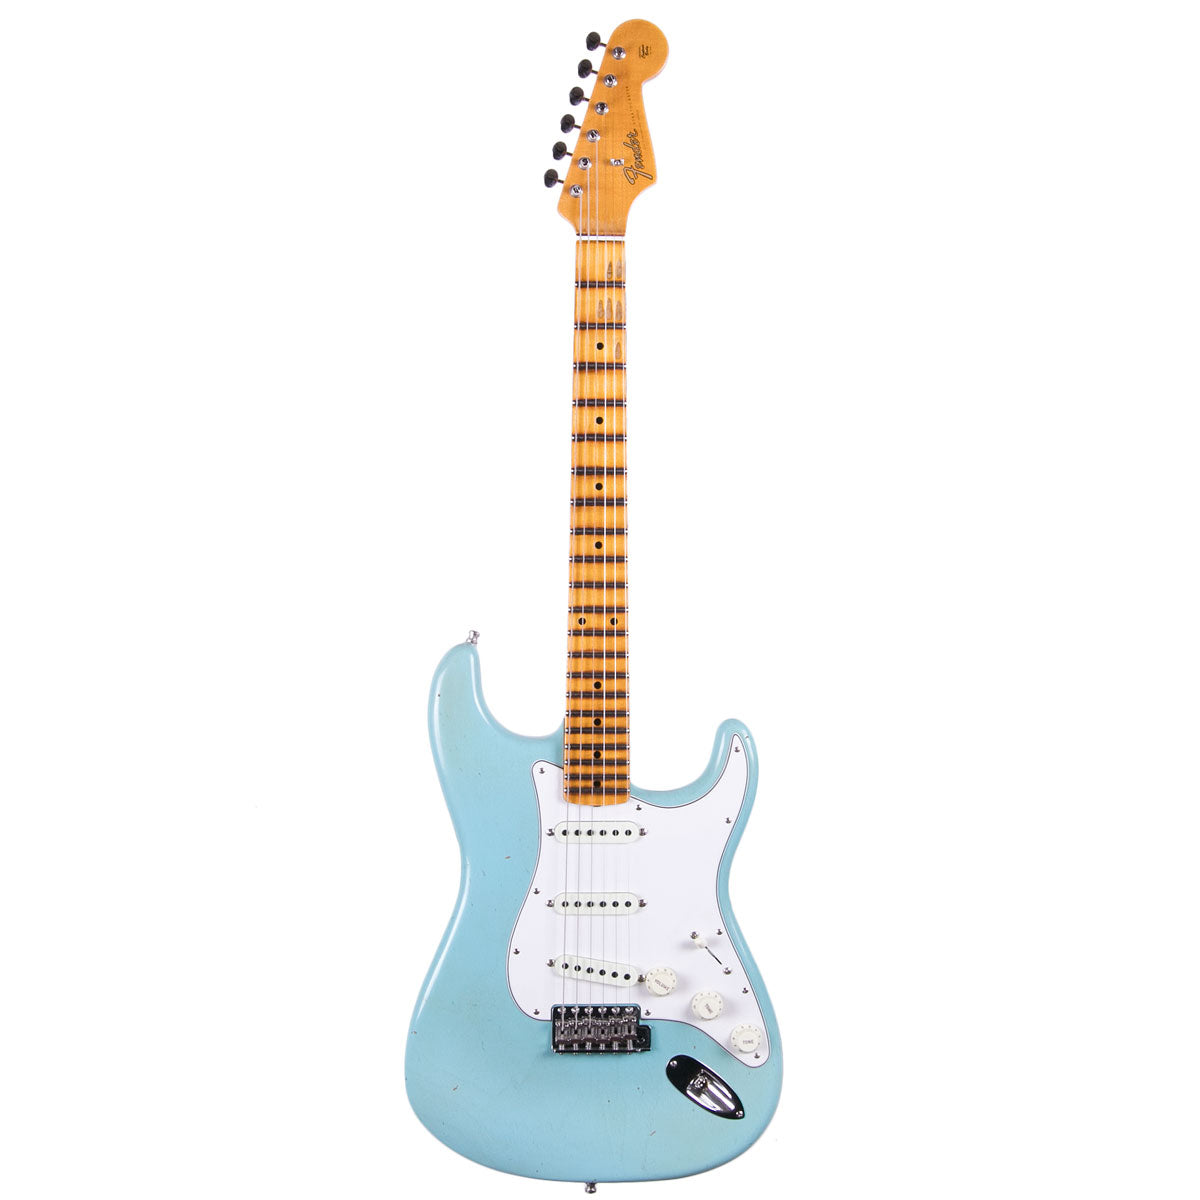 Fender Custom Shop 2018 Postmodern Strat Maple Journeyman Relic Aged Daphne Blue | Lucky Fret Music Co.